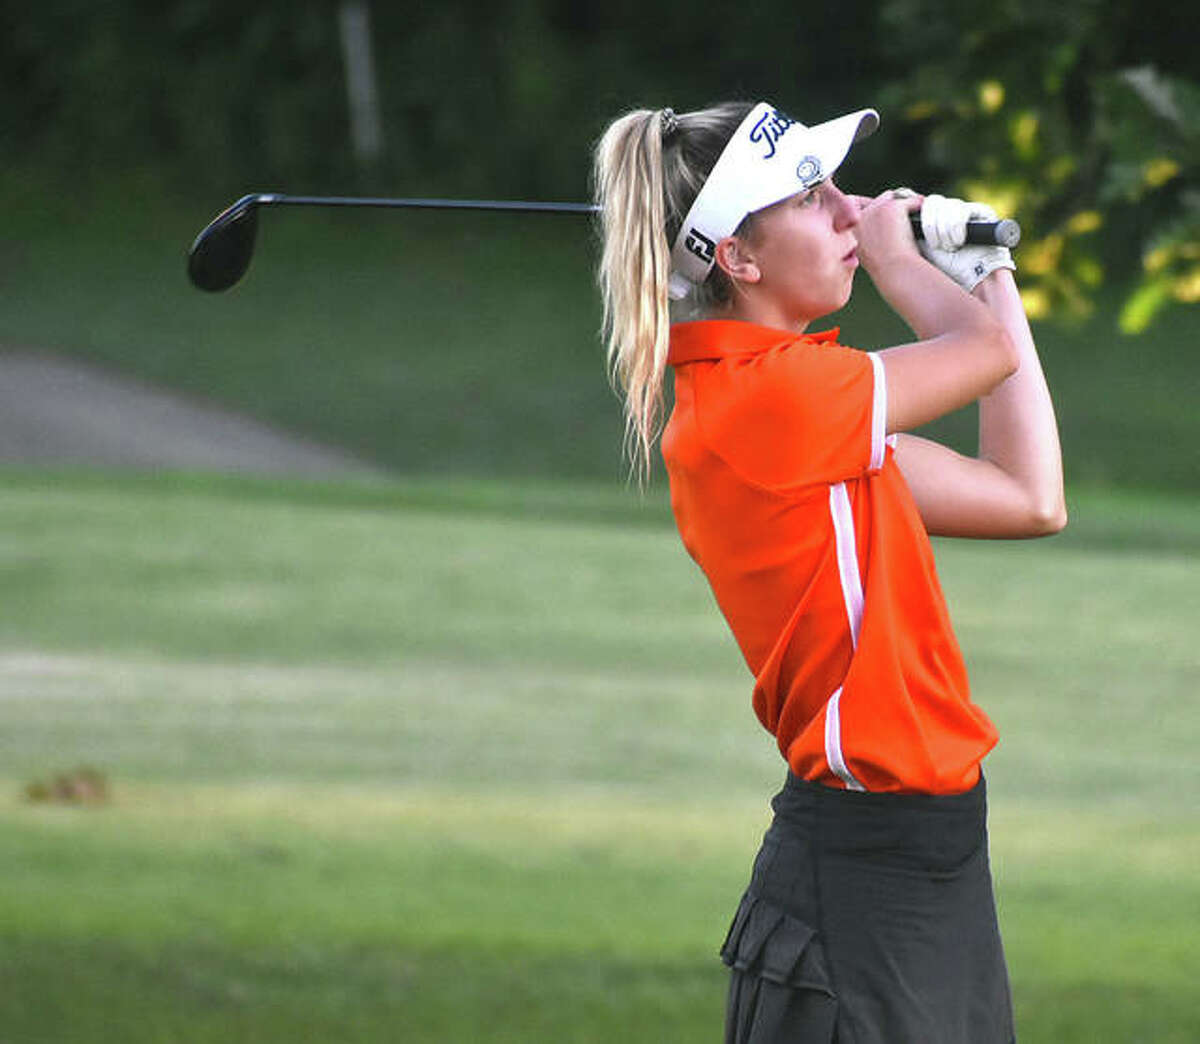 Edwardsville's Grace Daech watches her second shot on No. 4 at Woodlands Golf Club during the Alton Kick-Off Scramble/Shamble on Saturday in Alton.